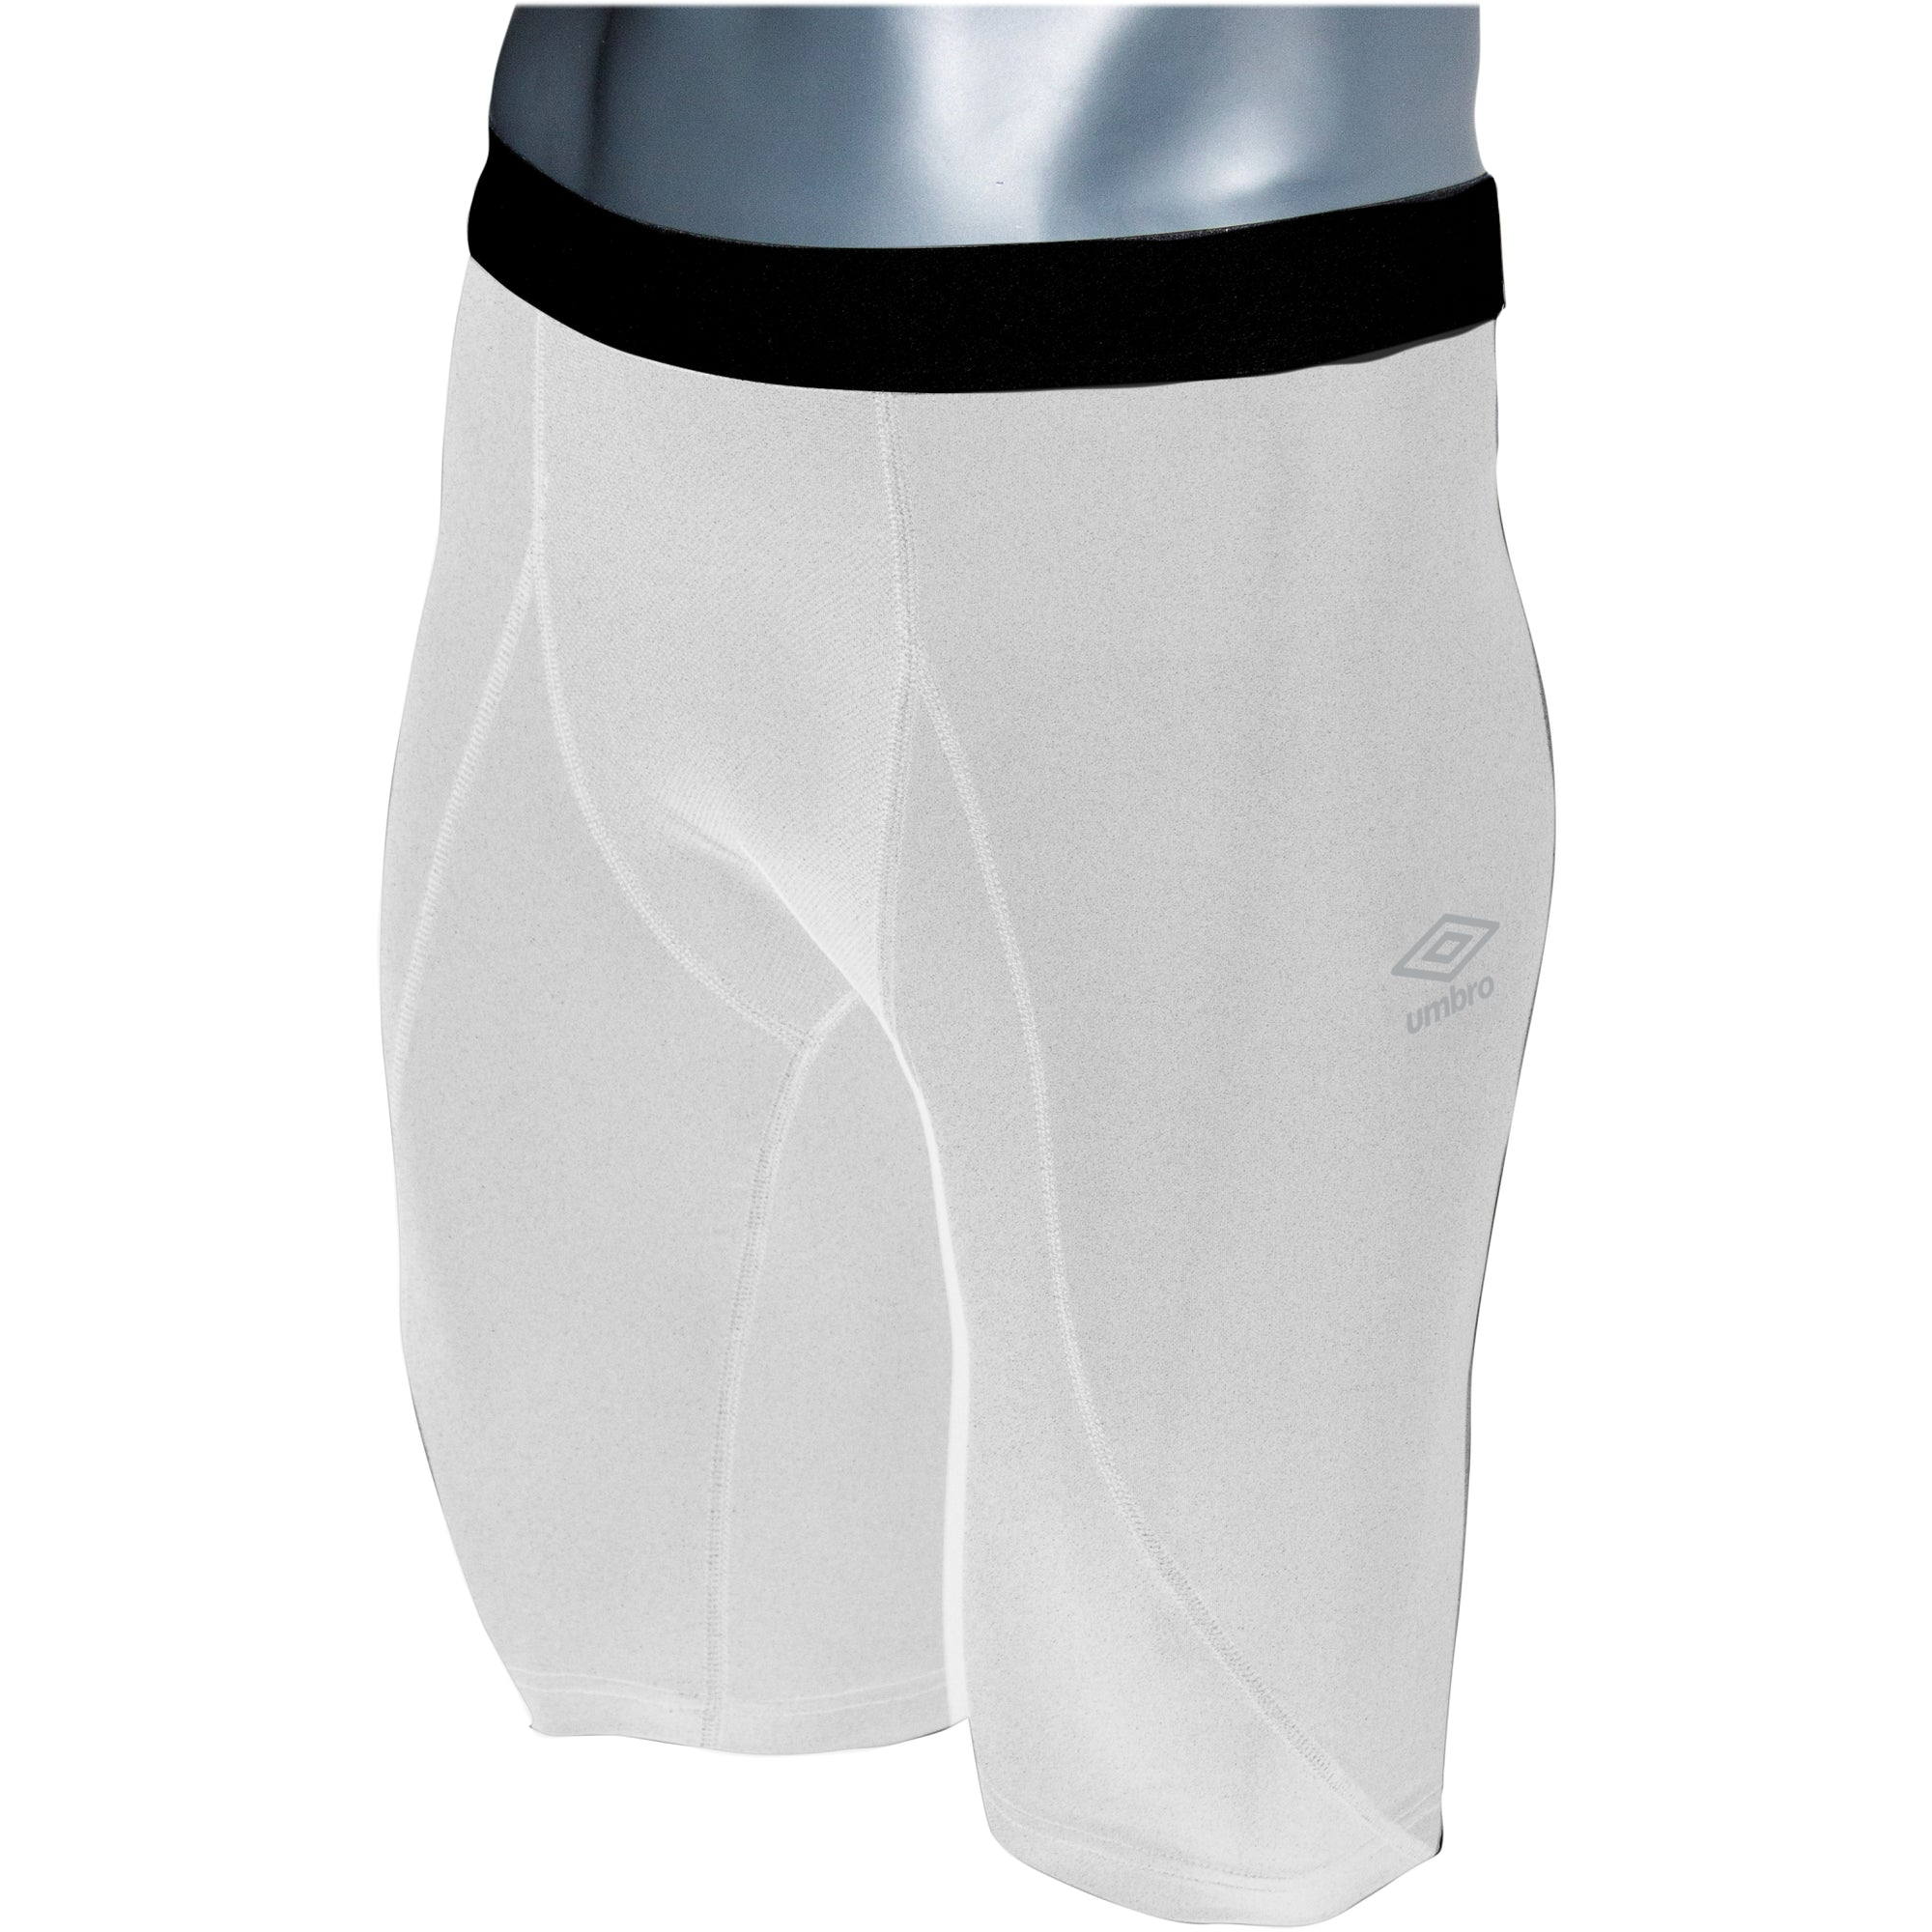 Umbro Elite Player Power Short in white with black waist band